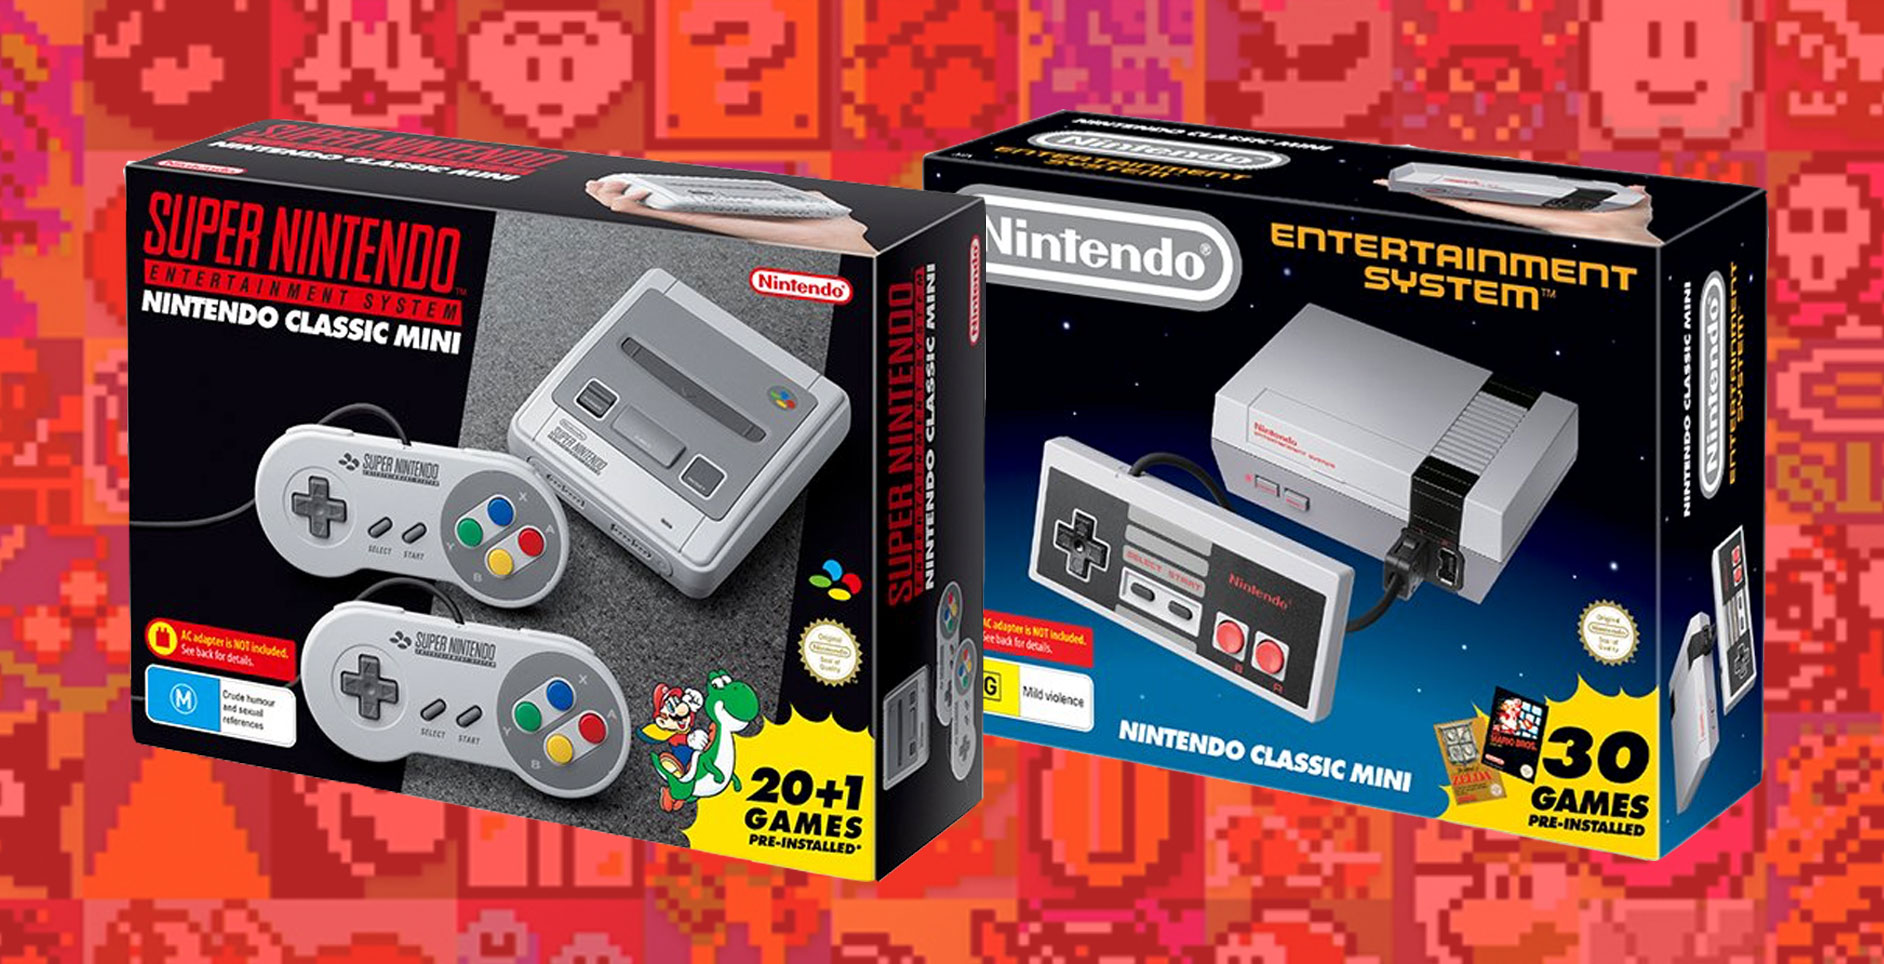 Miss out on a NES/SNES Mini? Fear not they're back this June